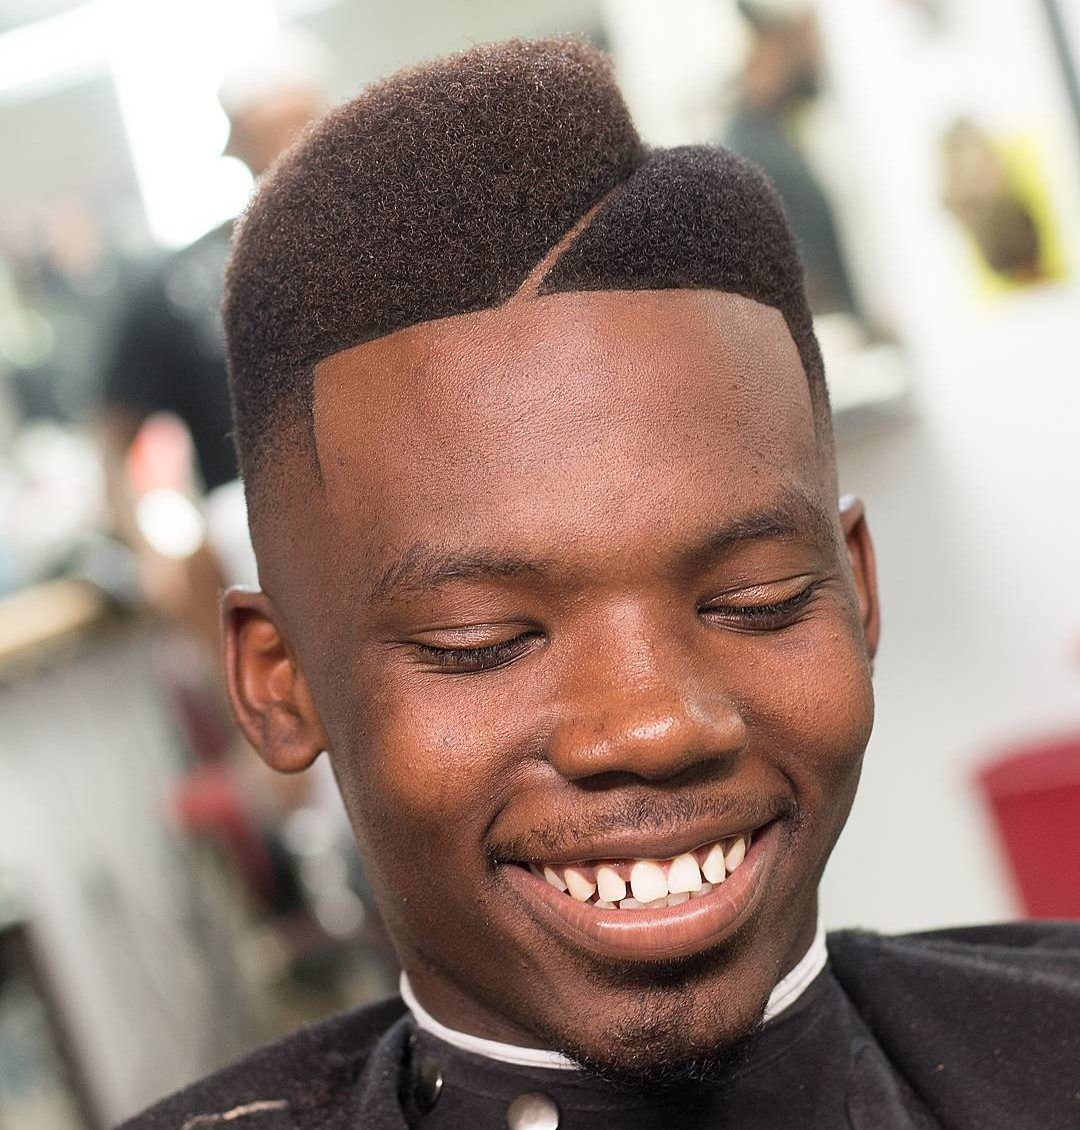 41+ What hairstyle is best for me male quiz ideas